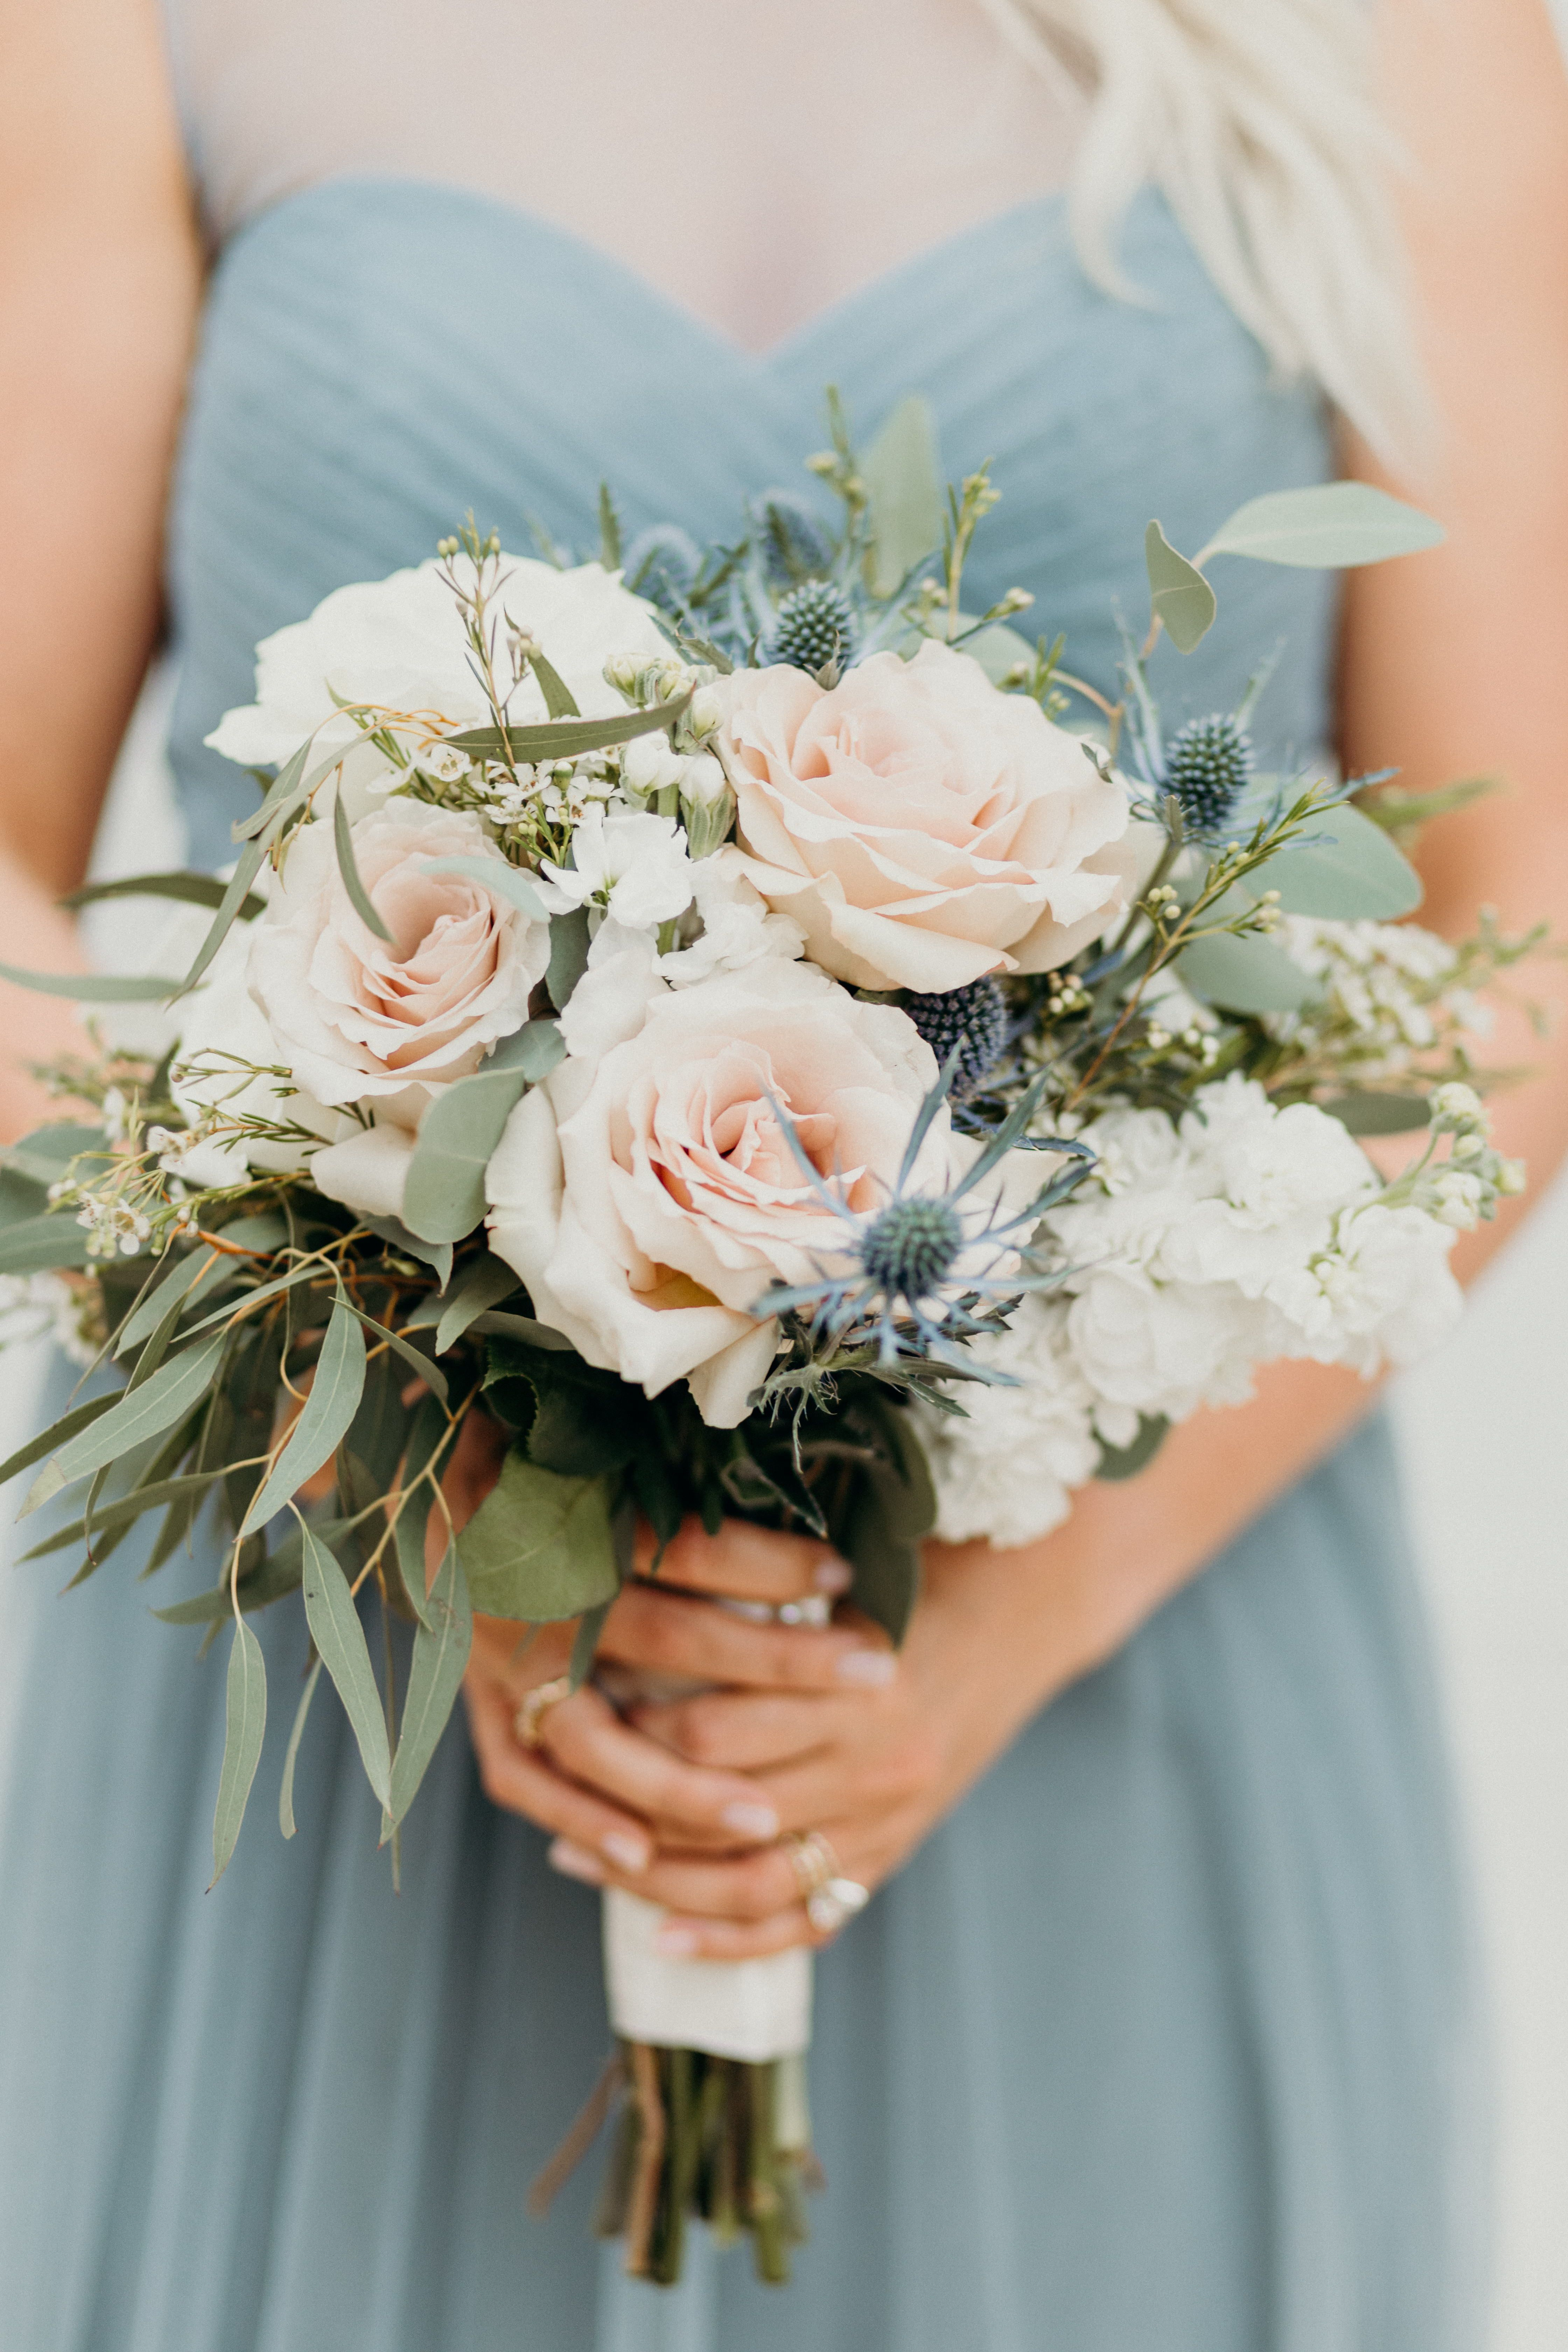 Wedding Bouquet With Roses And Eucalyptus Blue Bridesmaid Dress